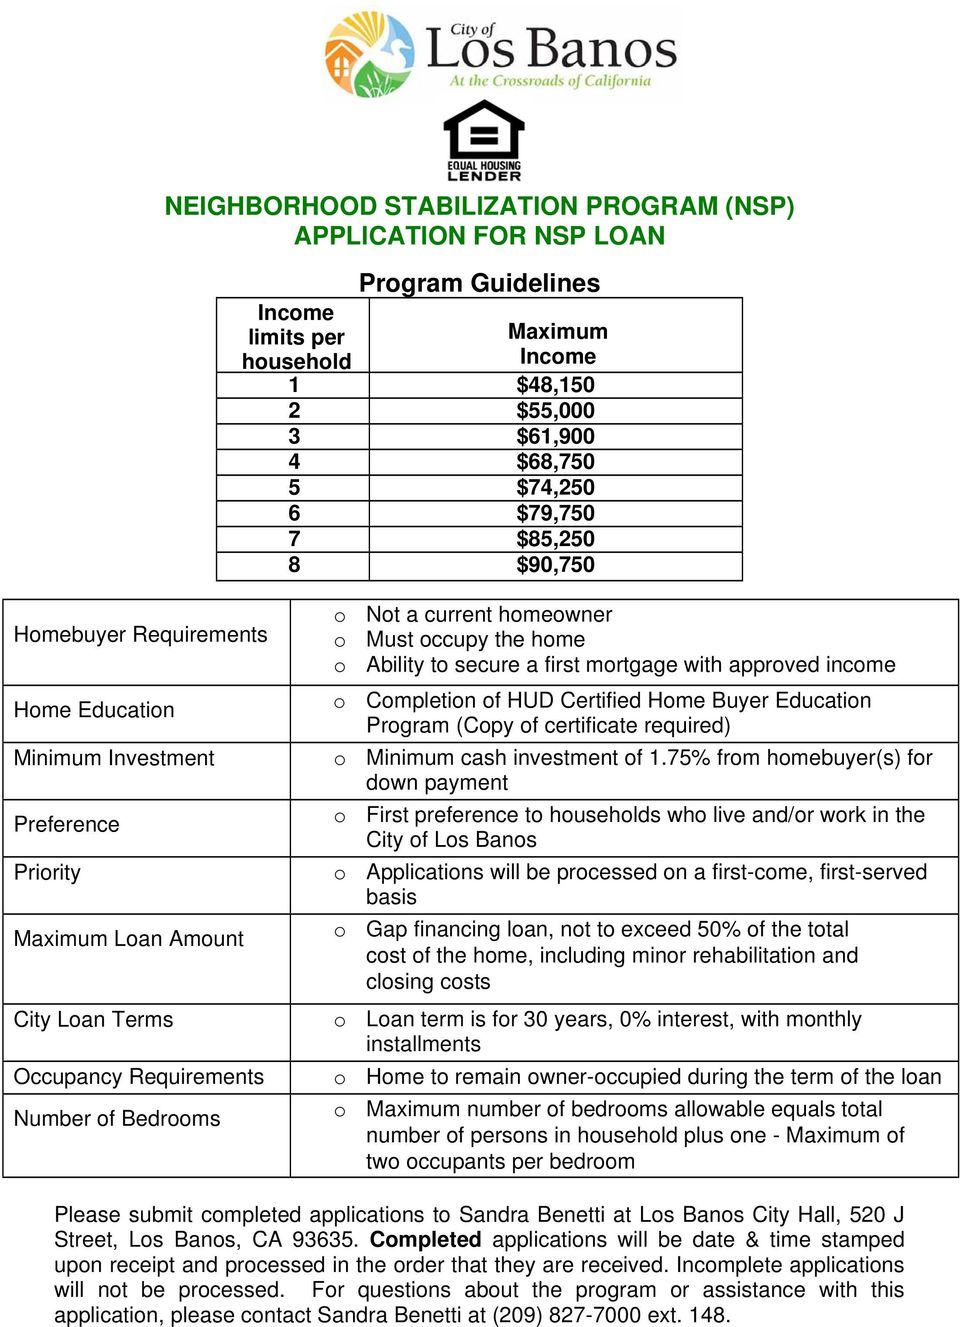 mortgage with approved income o Completion of HUD Certified Home Buyer Education Program (Copy of certificate required) o Minimum cash investment of 1.